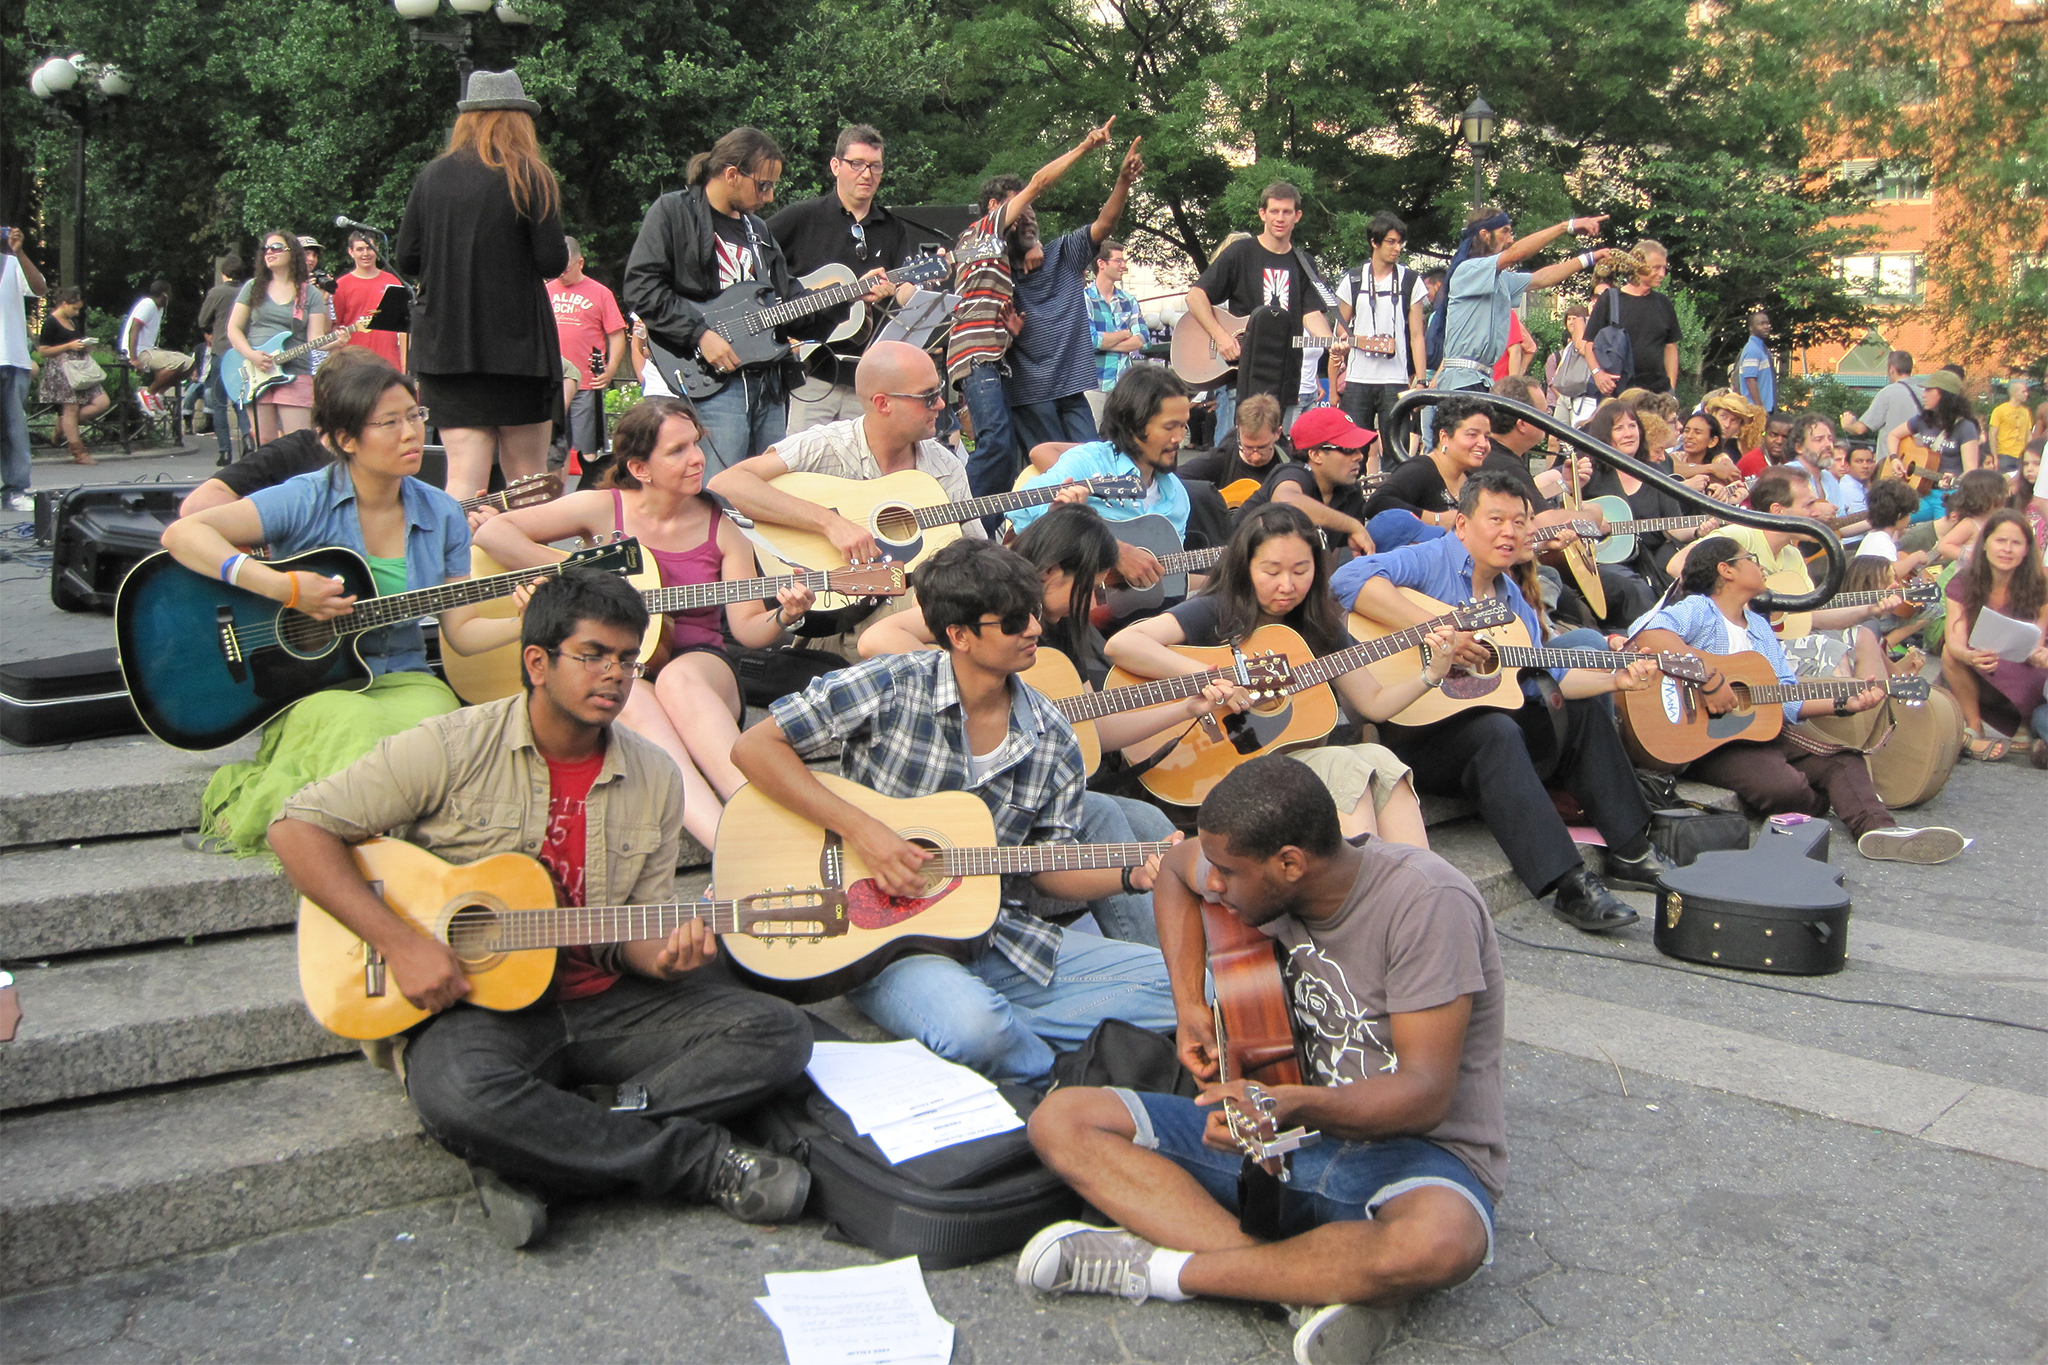 Hear the streets come alive with the sound of music during Make Music New York